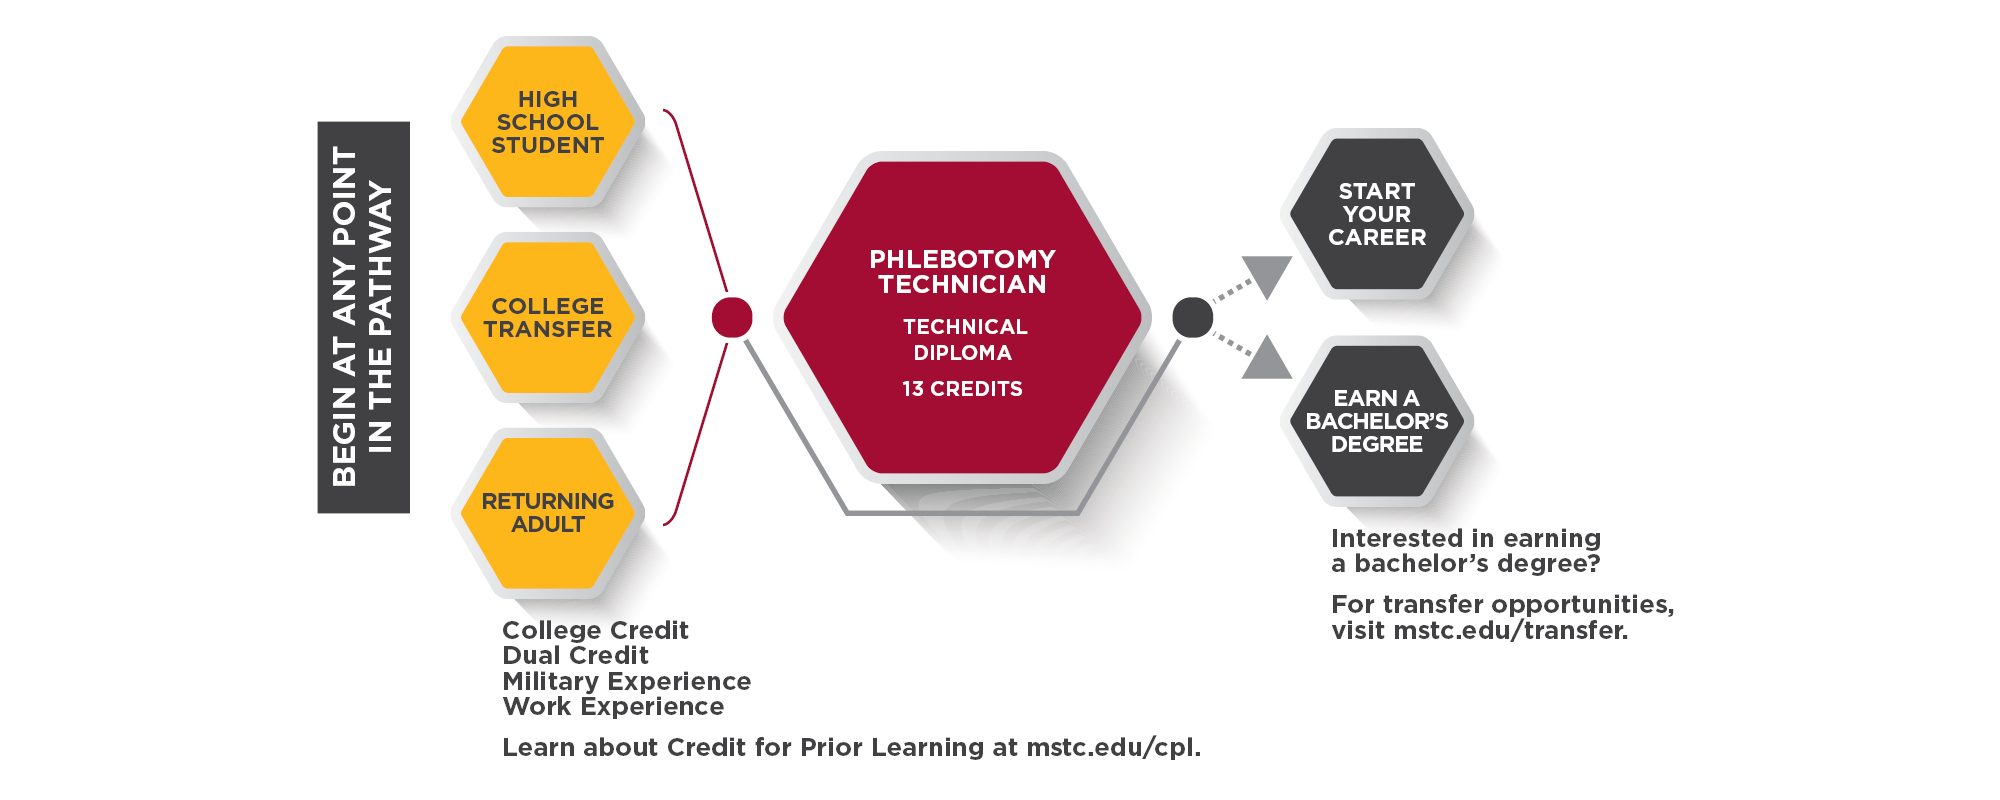 Phlebotomy Technician Pathway